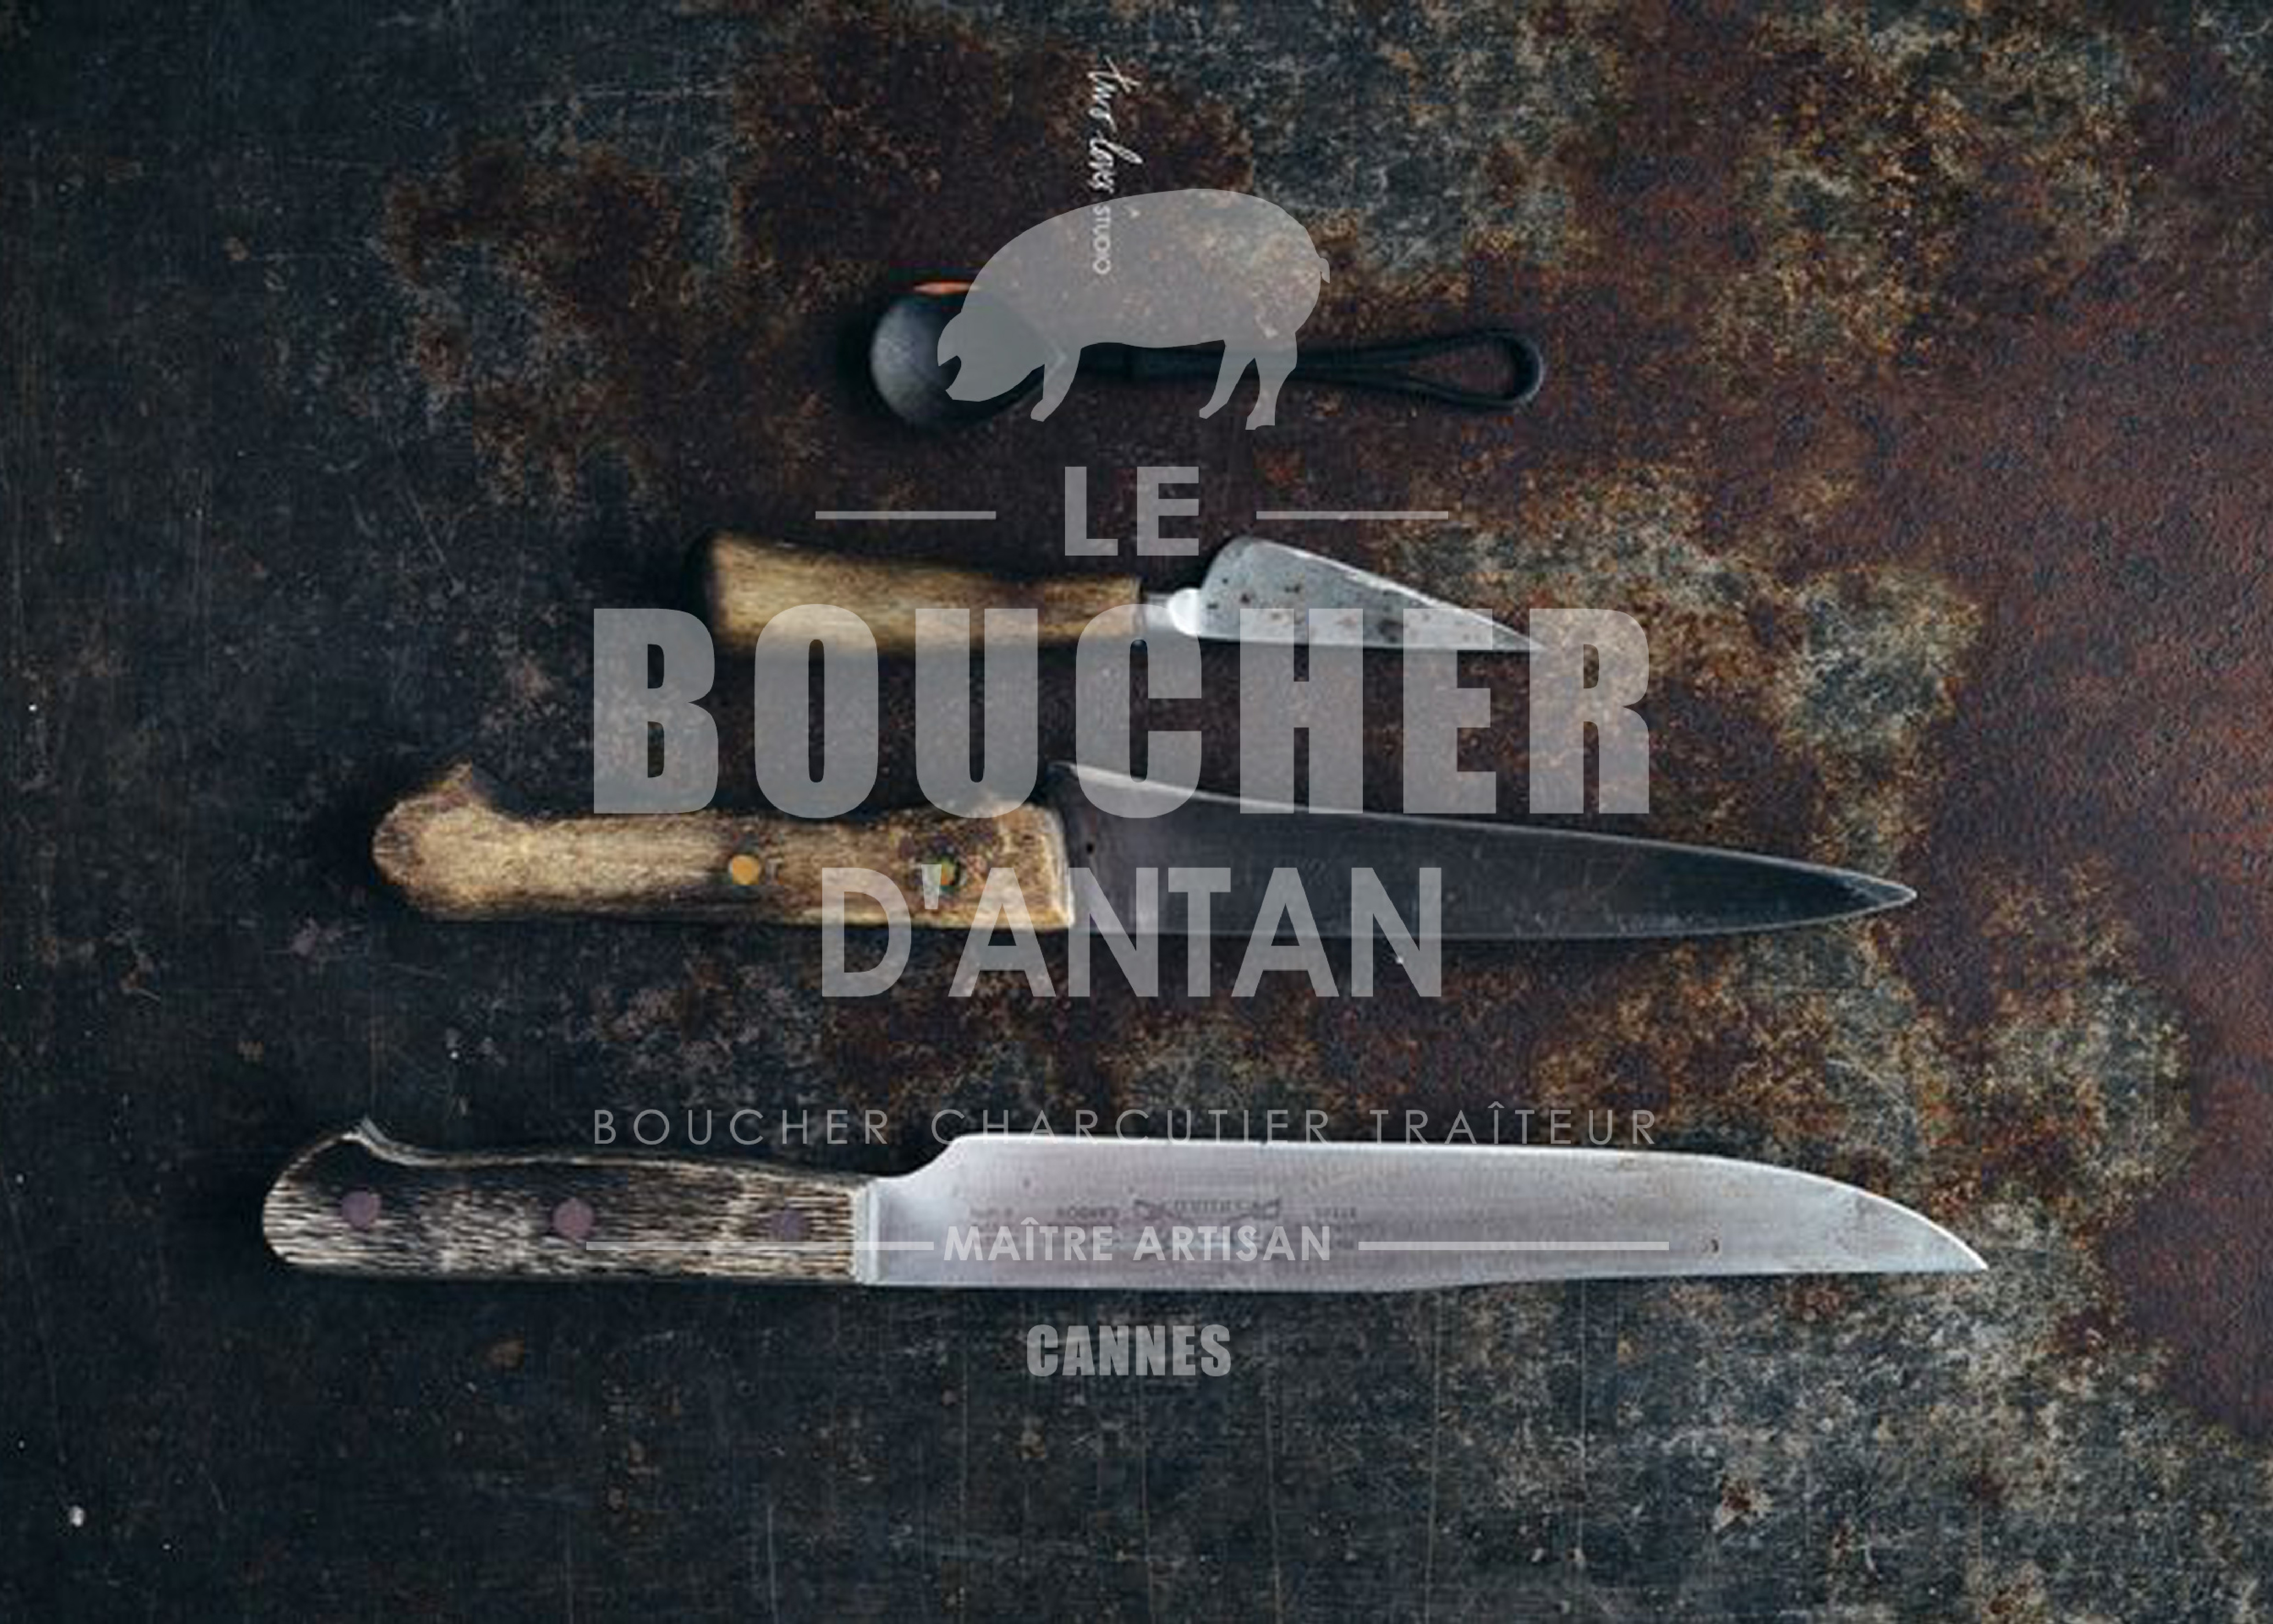 Best butcher in Cannes